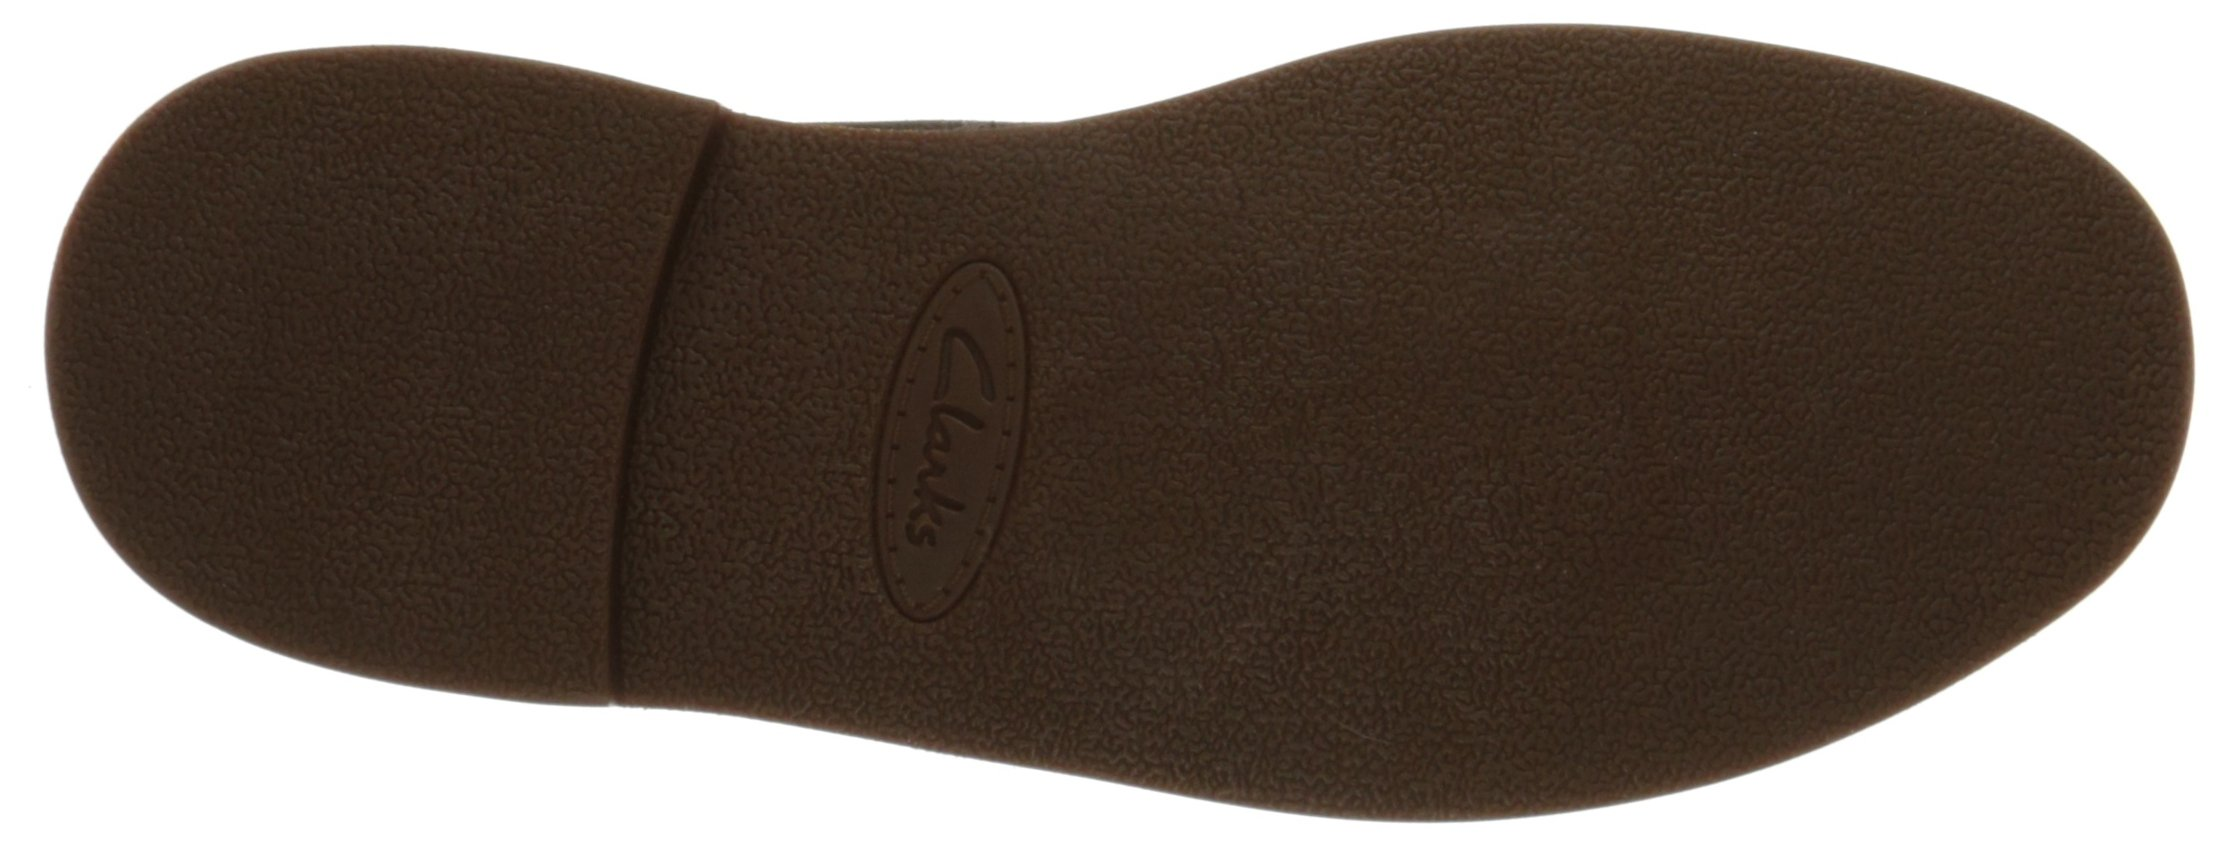 Clarks Men's Bushacre 2 Chukka Boot,Brown Suede,13 M US by CLARKS (Image #3)